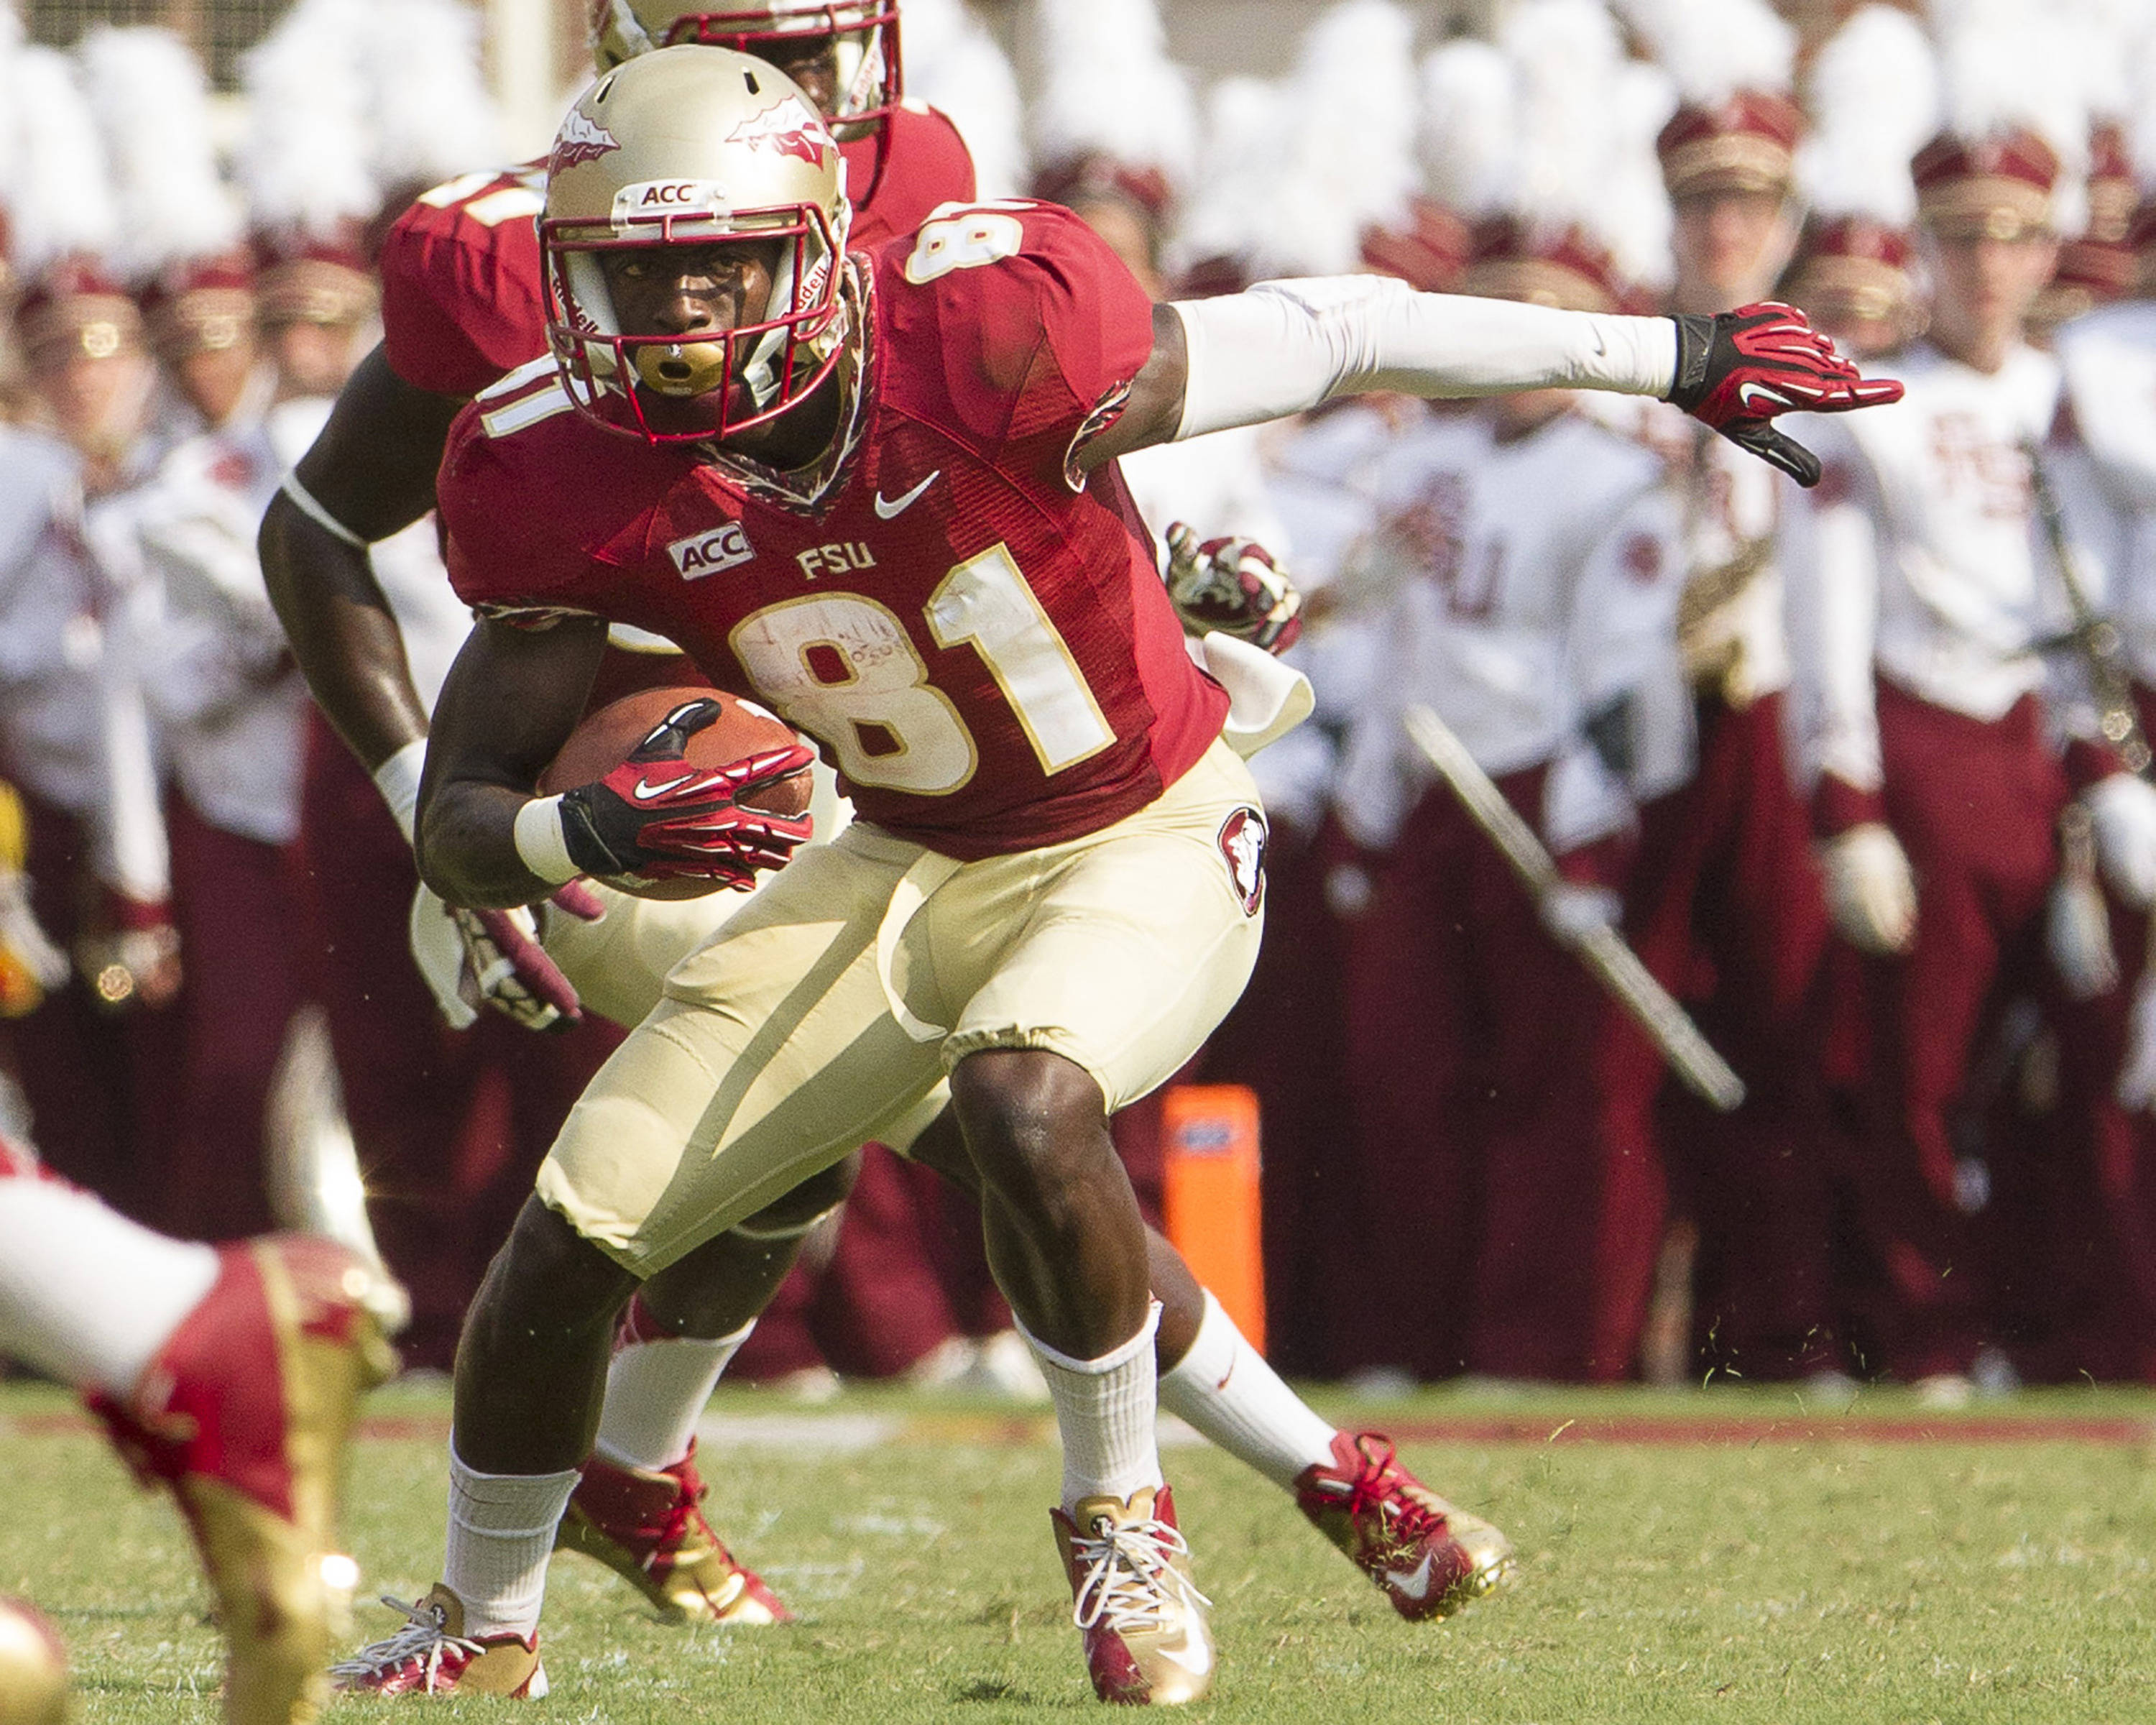 Kenny Shaw (81) carries the ball during FSU's 62-7 win over Nevada on Saturday, Sept 14, 2013 in Tallahassee, Fla.